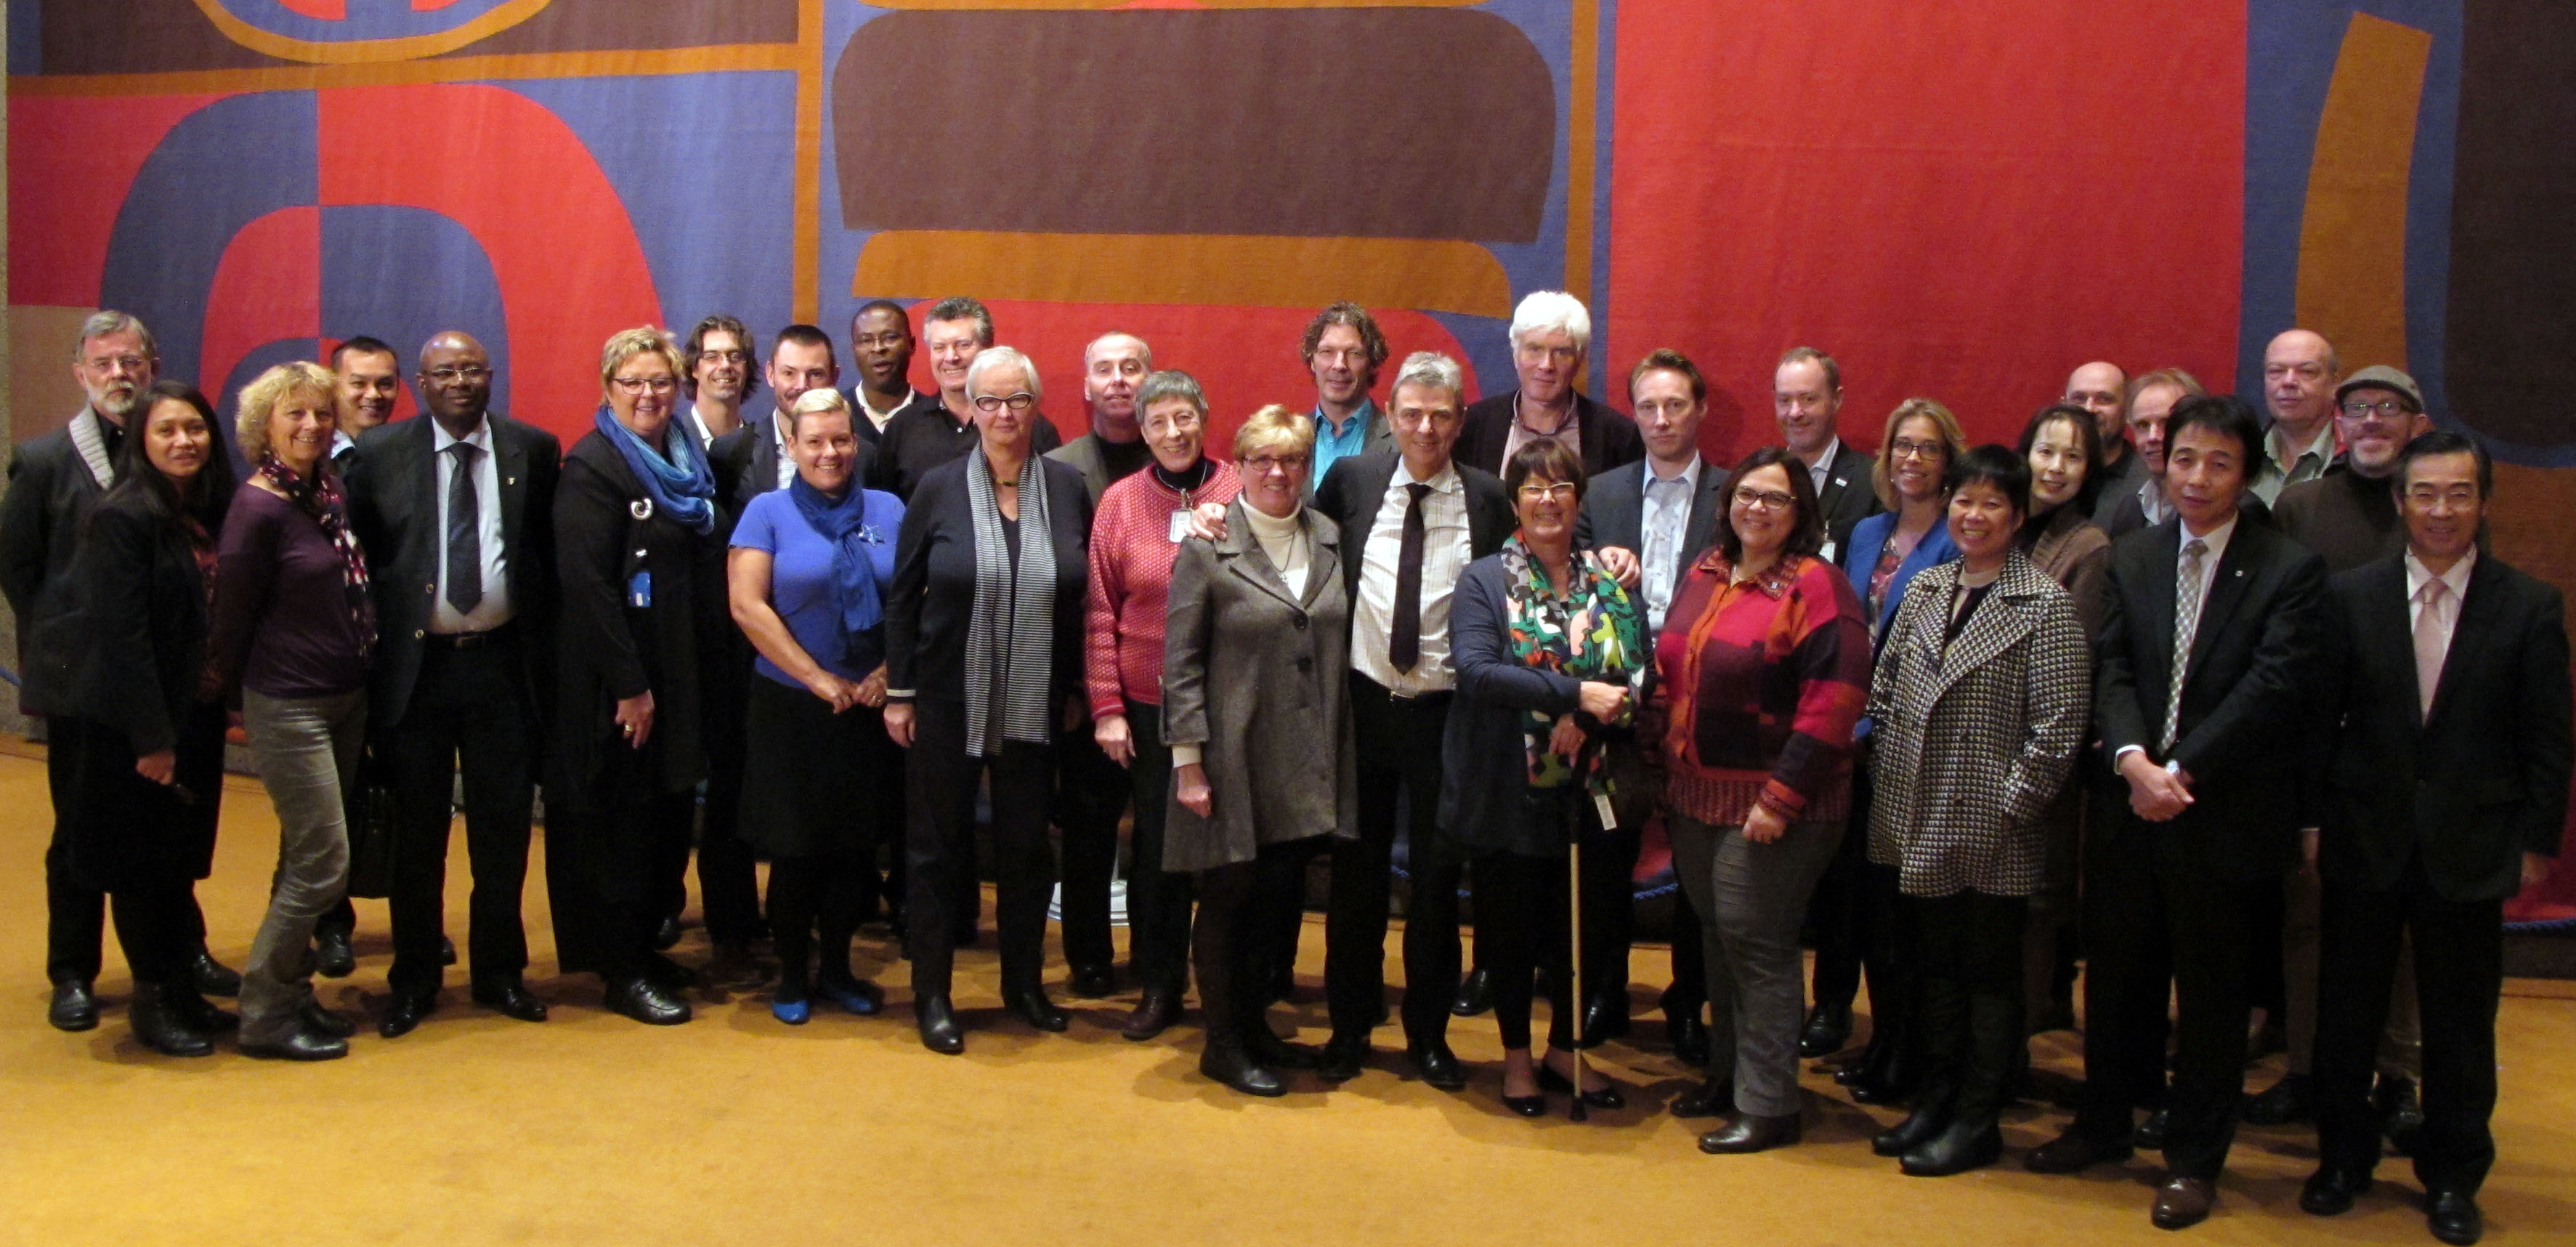 PSI Steering Committee and staff, November 2013